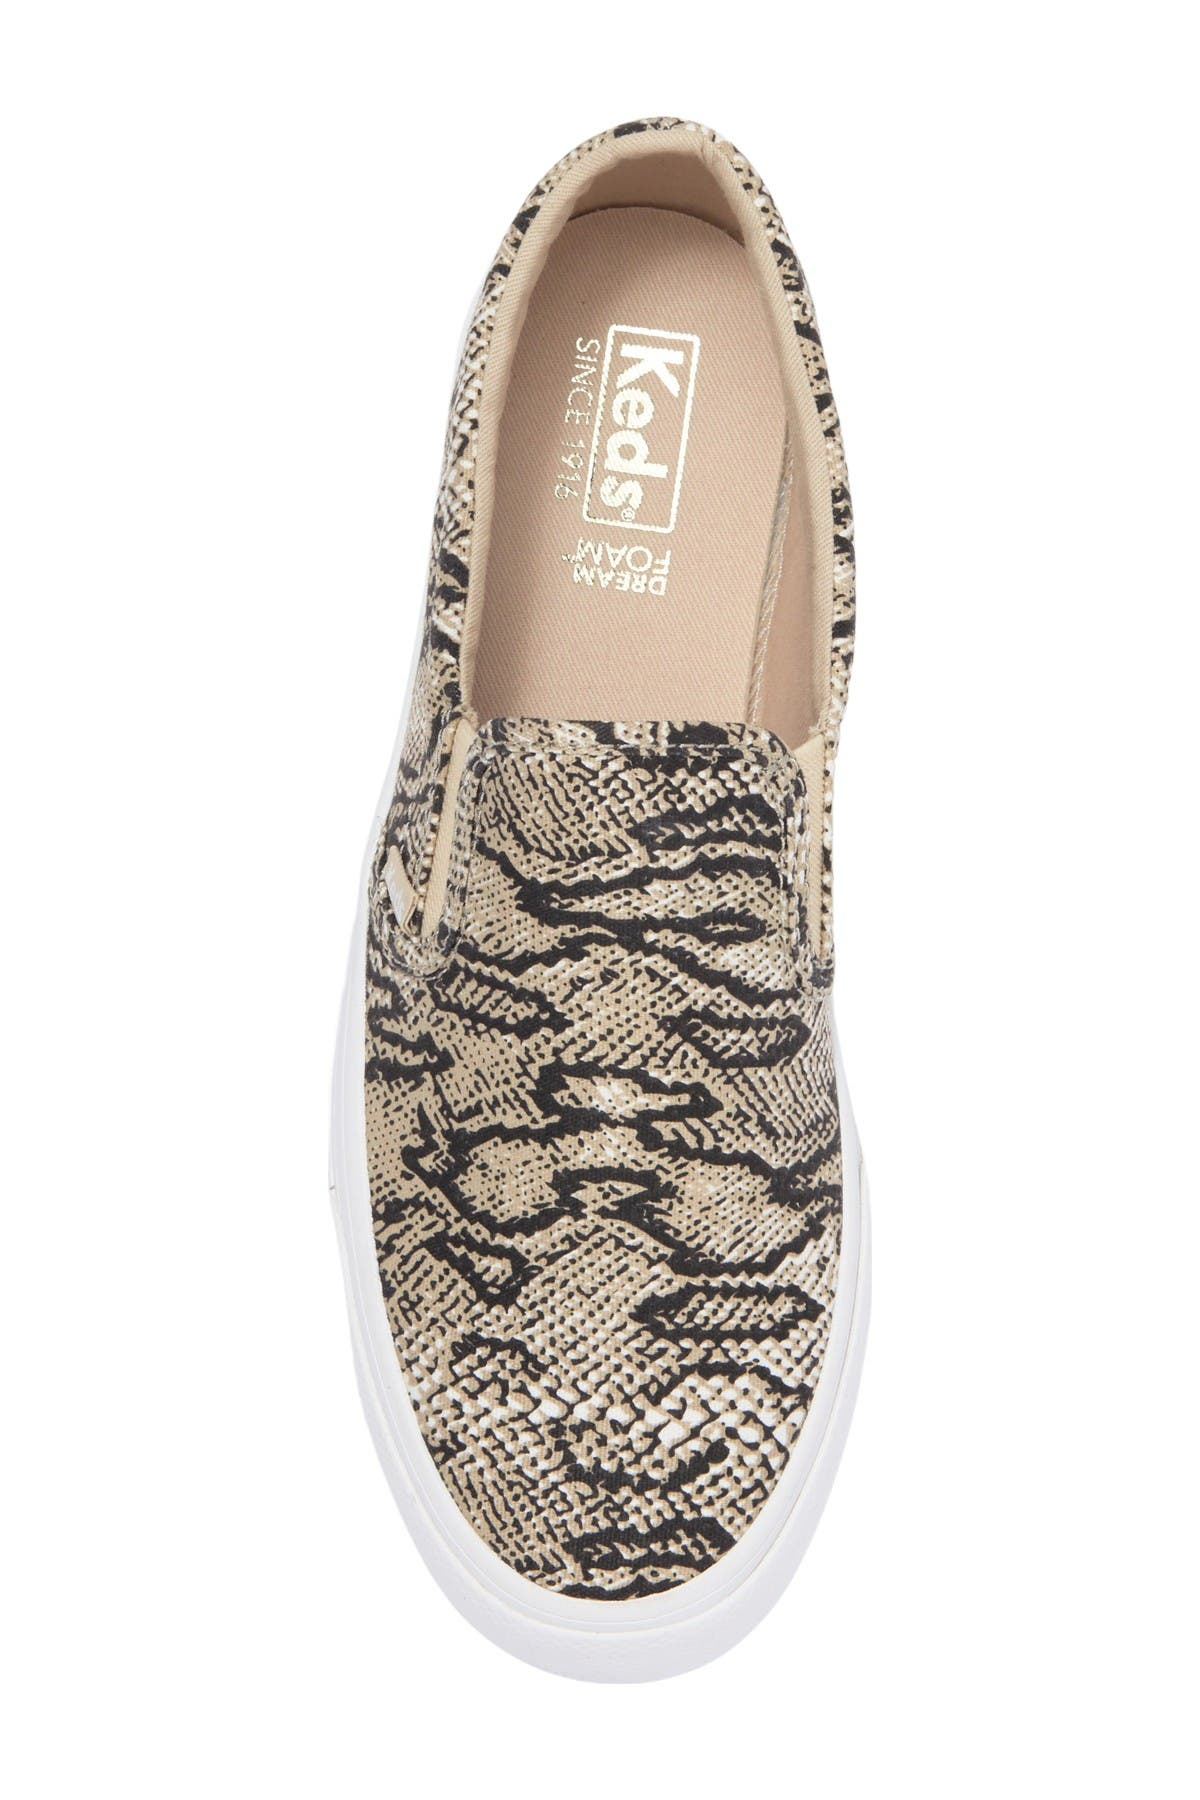 Image of Keds Jump Kick Snake Print Slip-On Sneaker